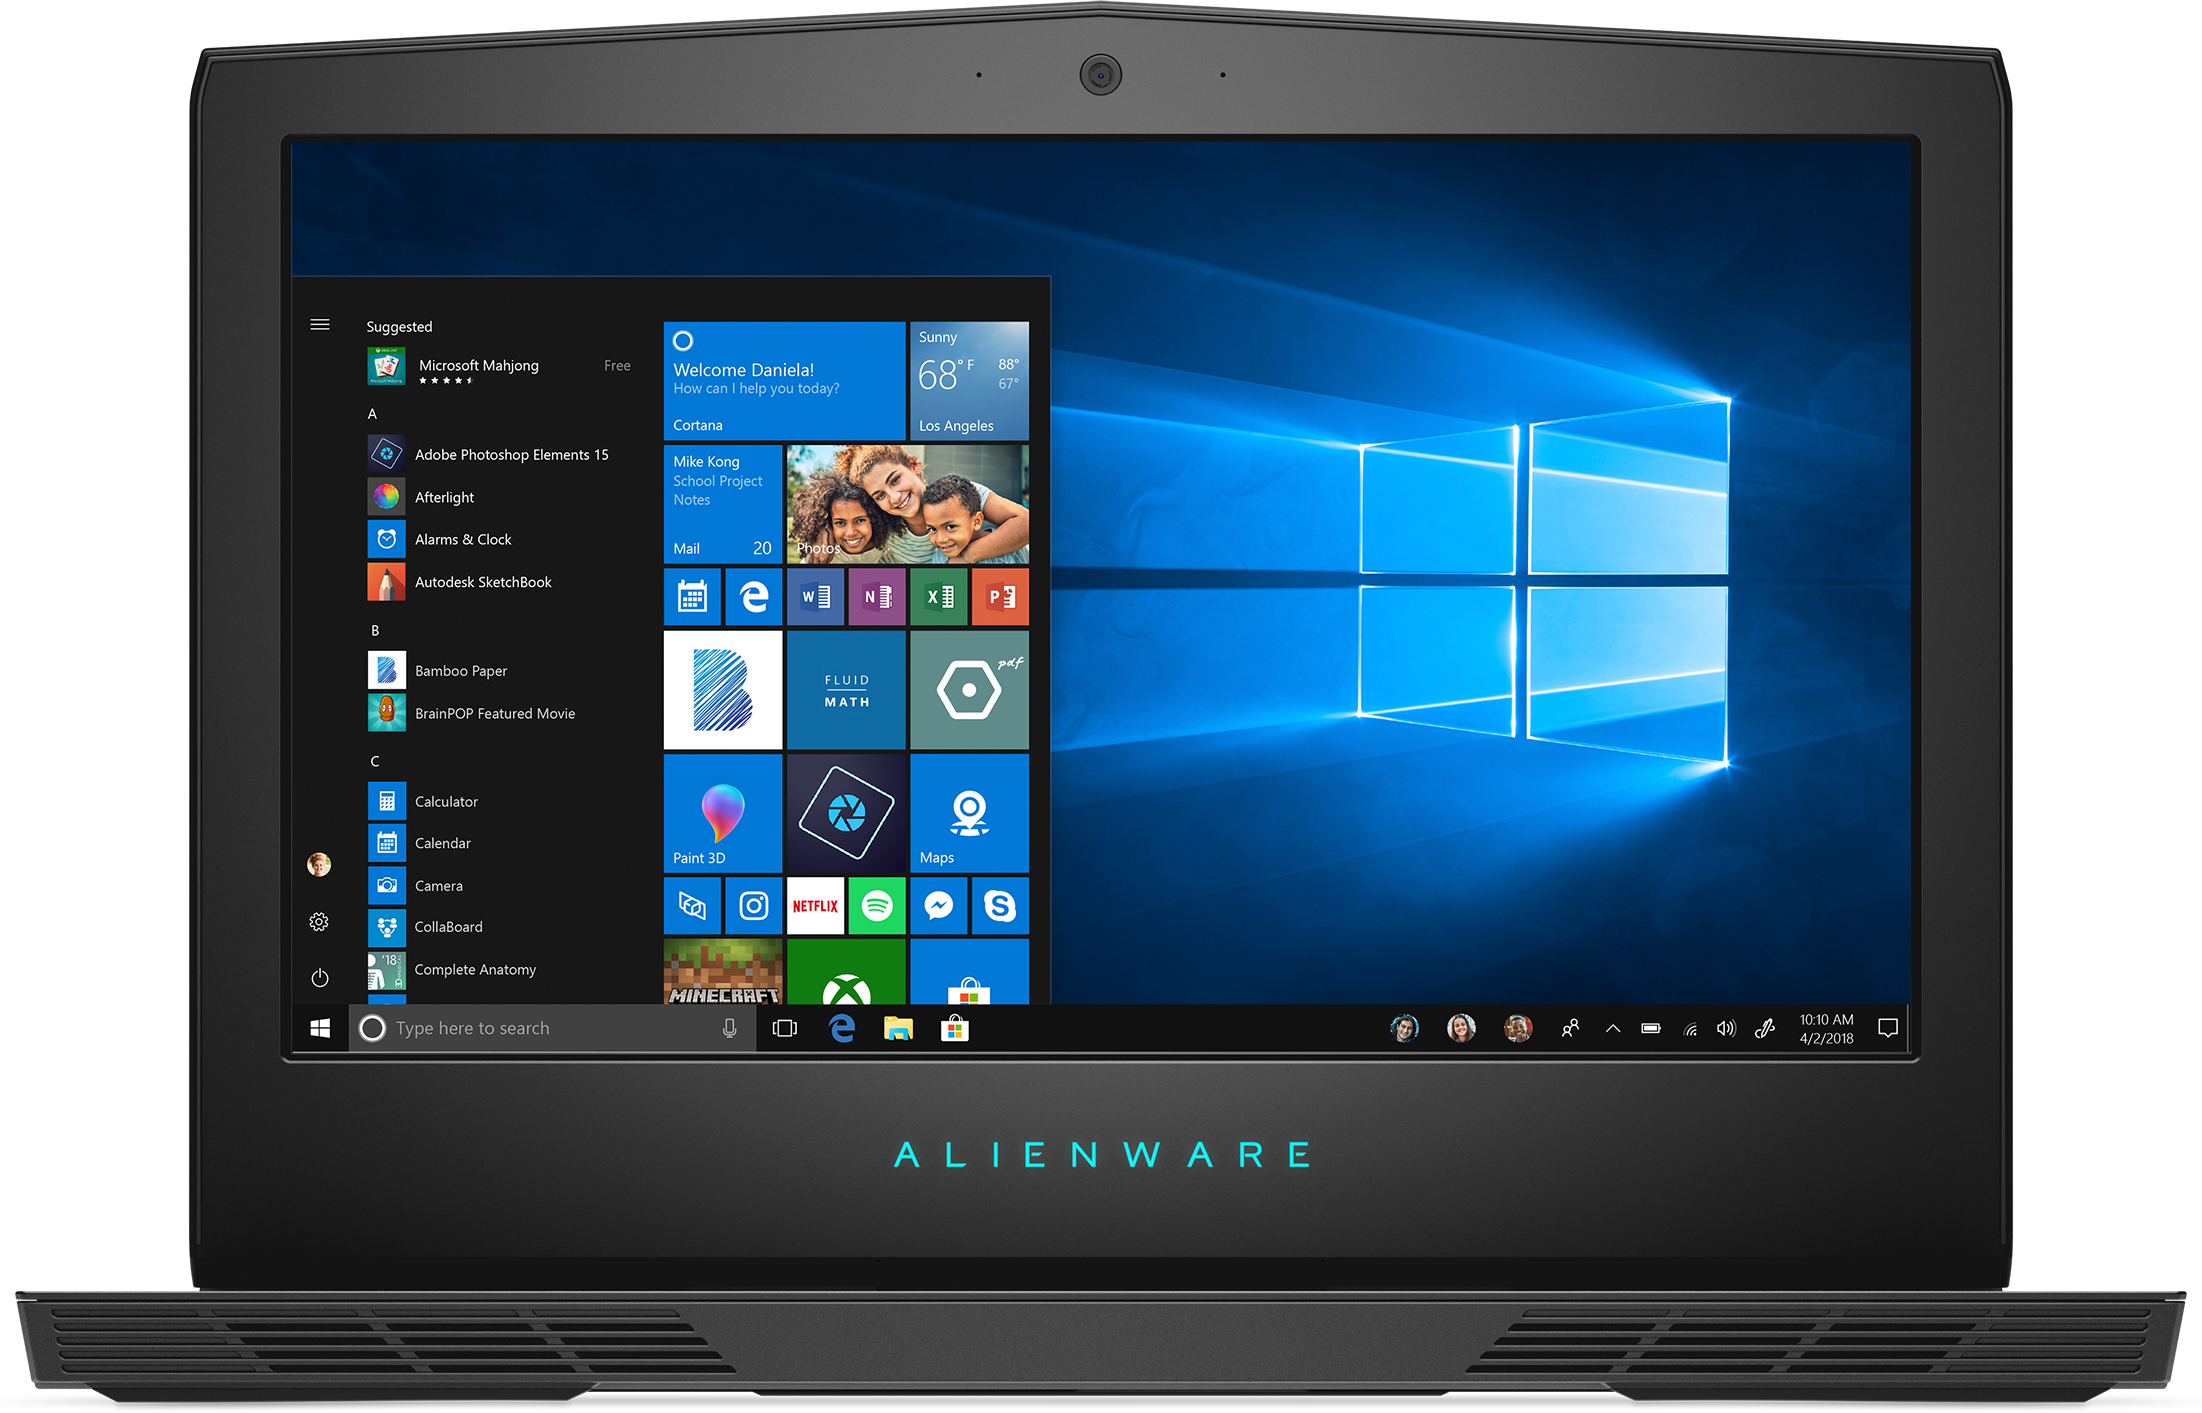 15.6-inch Full HD display Intel Core i7-8750H 16GB memory/1TB HDD + 256GB SSD VR-ready NVIDIA GeForce GTX 1070 graphics. Featured at RJO Ventures, Inc.